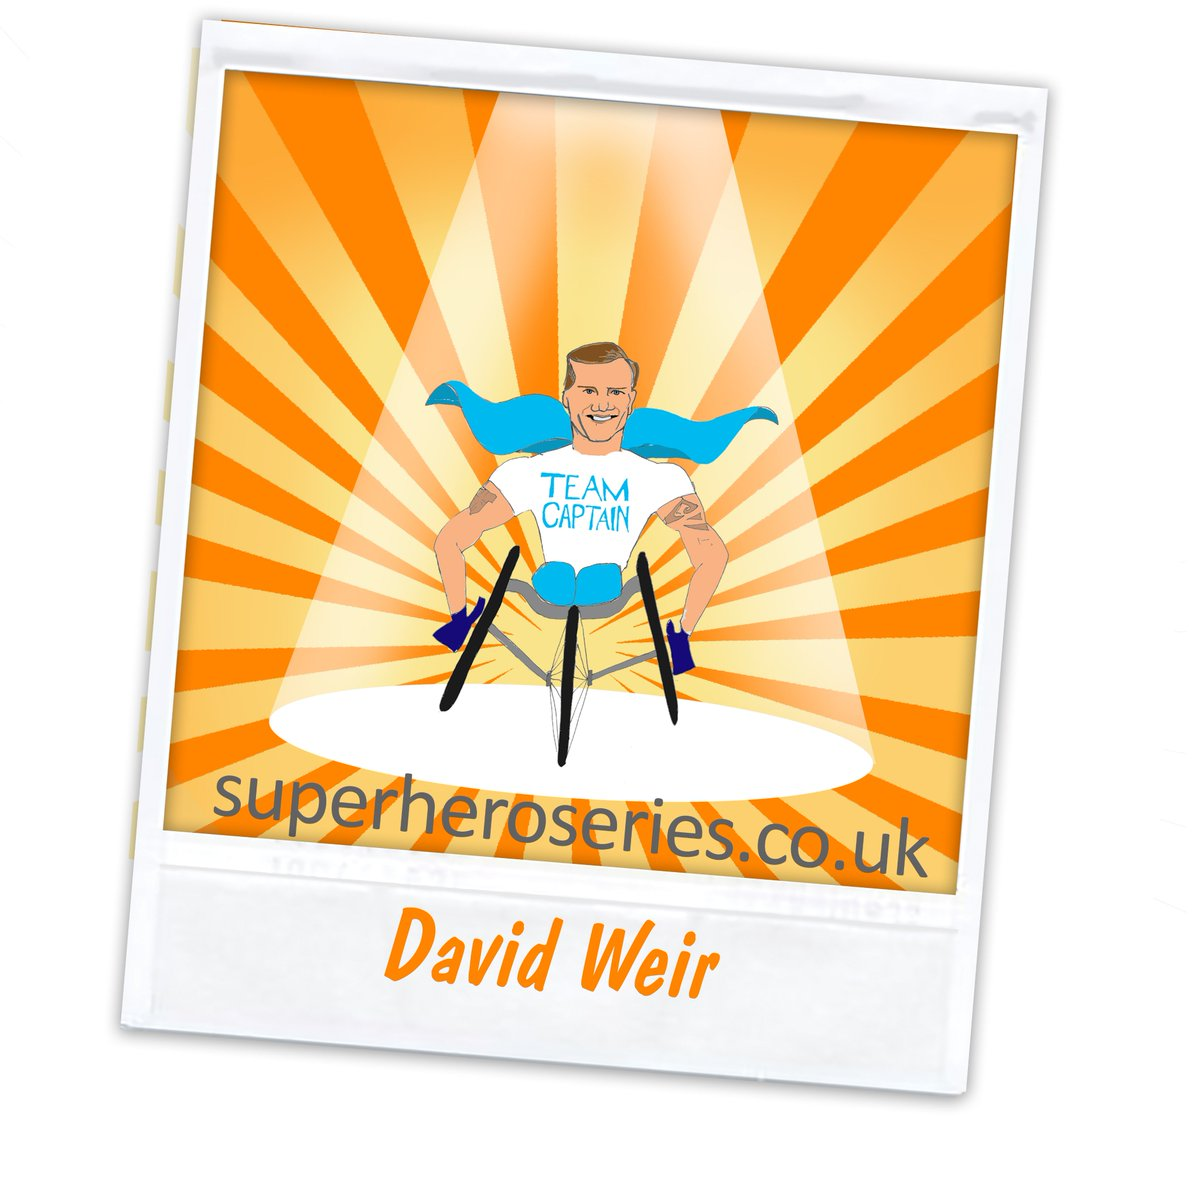 1520bab46 ... in the Superhero Celebrity Tri! For a chance to join forces with this  racing legend